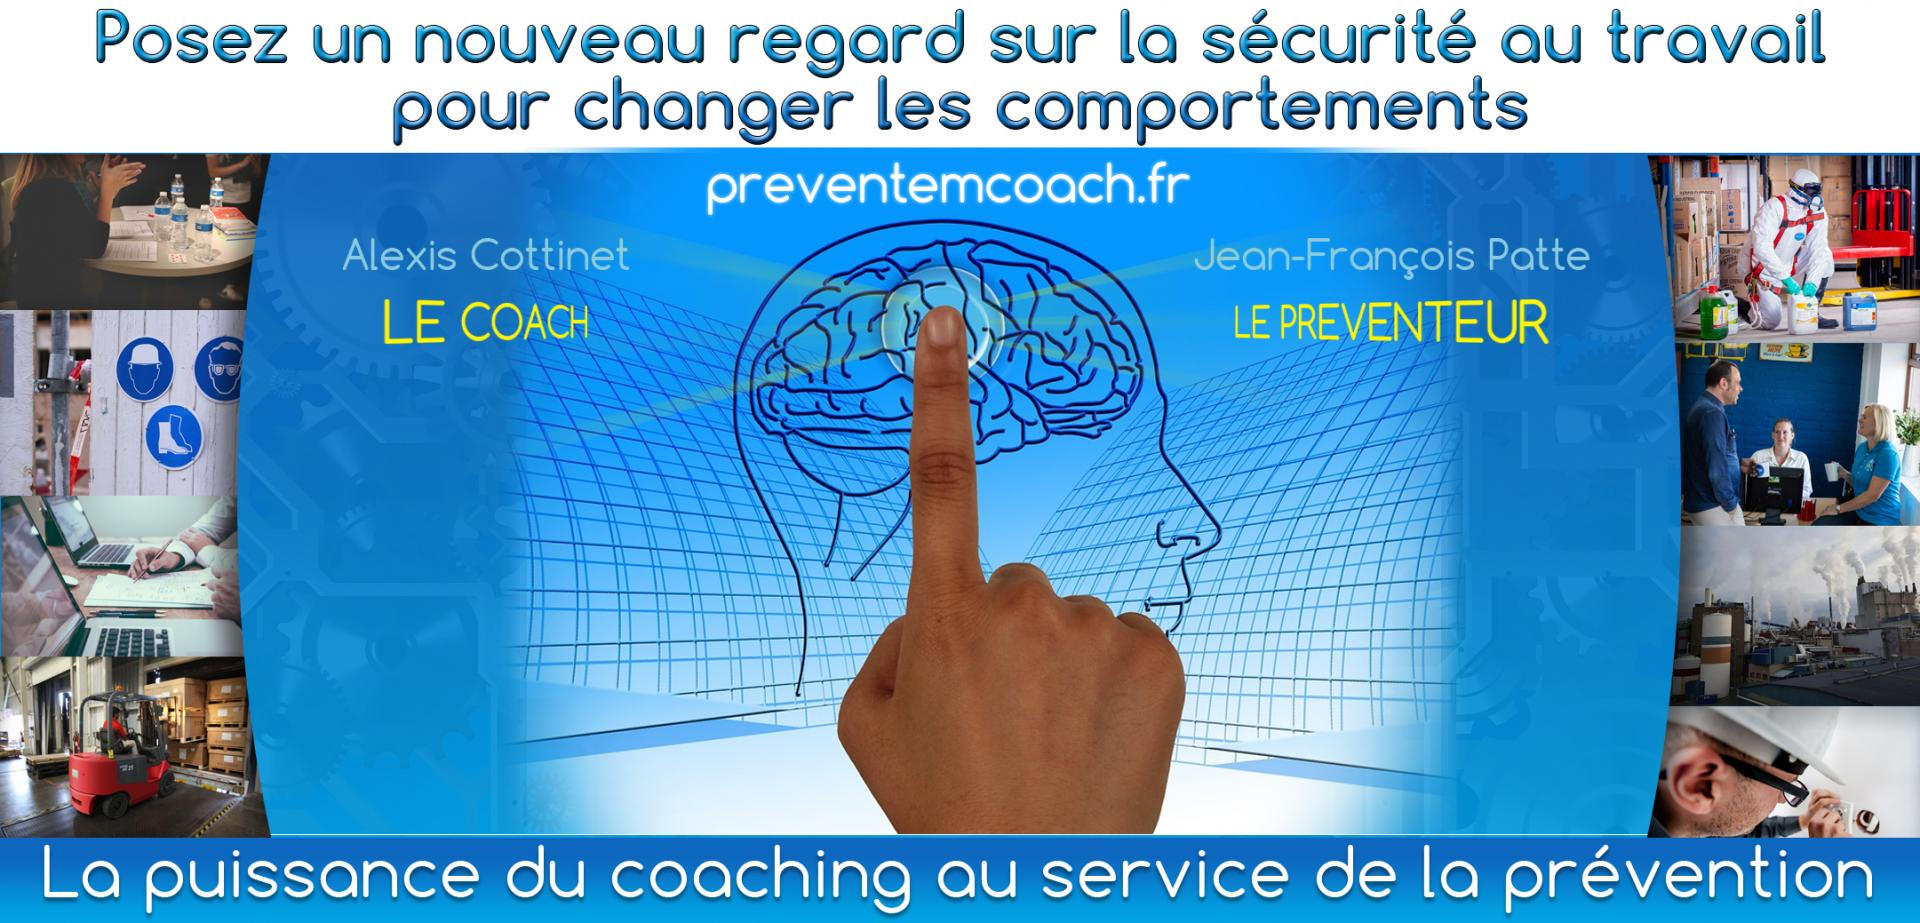 preventemcoach